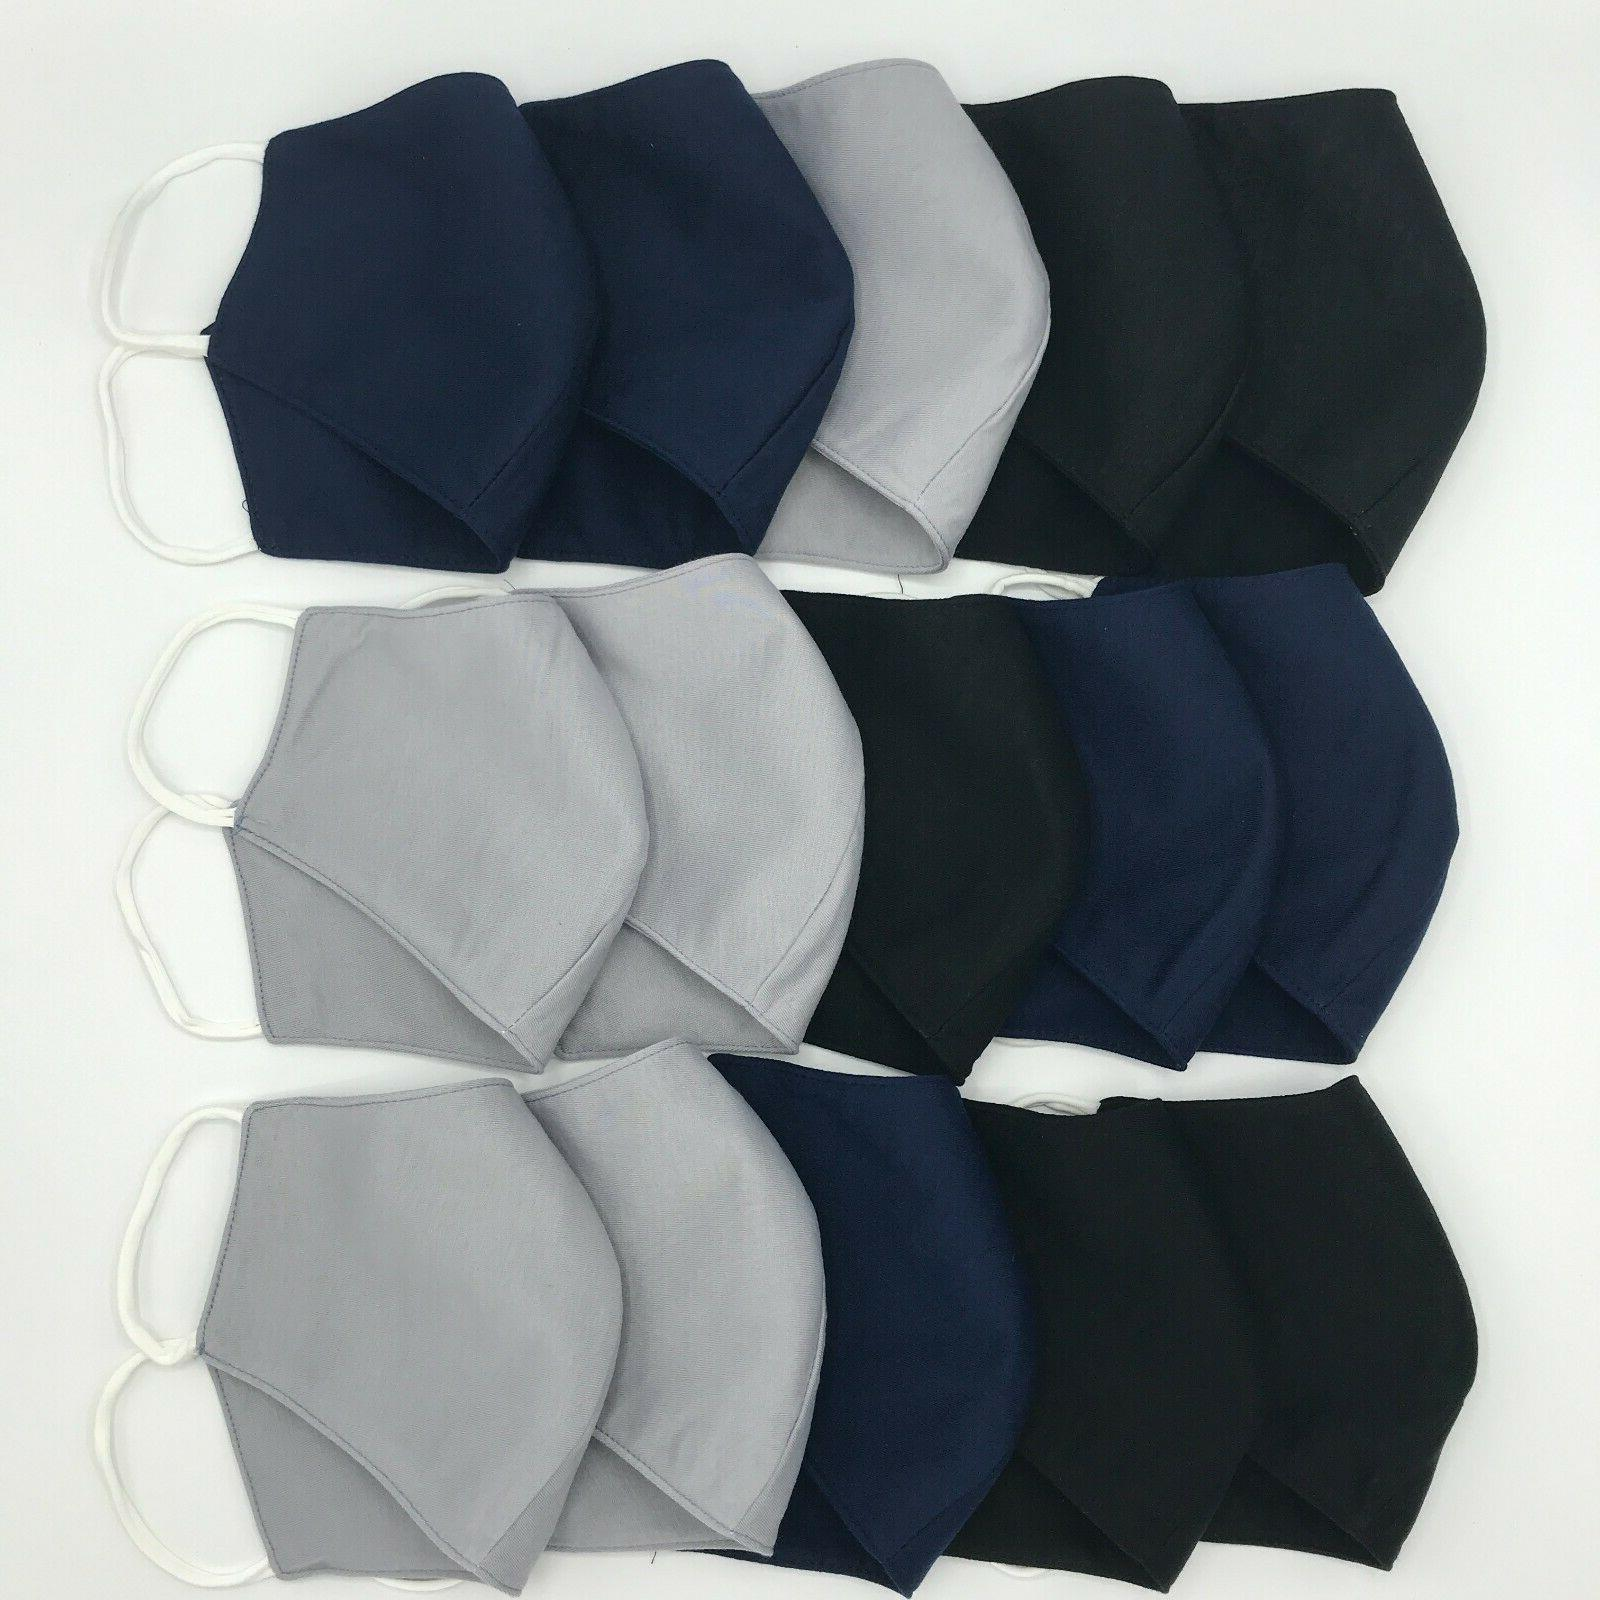 5 PACK Masks, SOLID Medium Fabric, 3-Fly Washable/Reusable